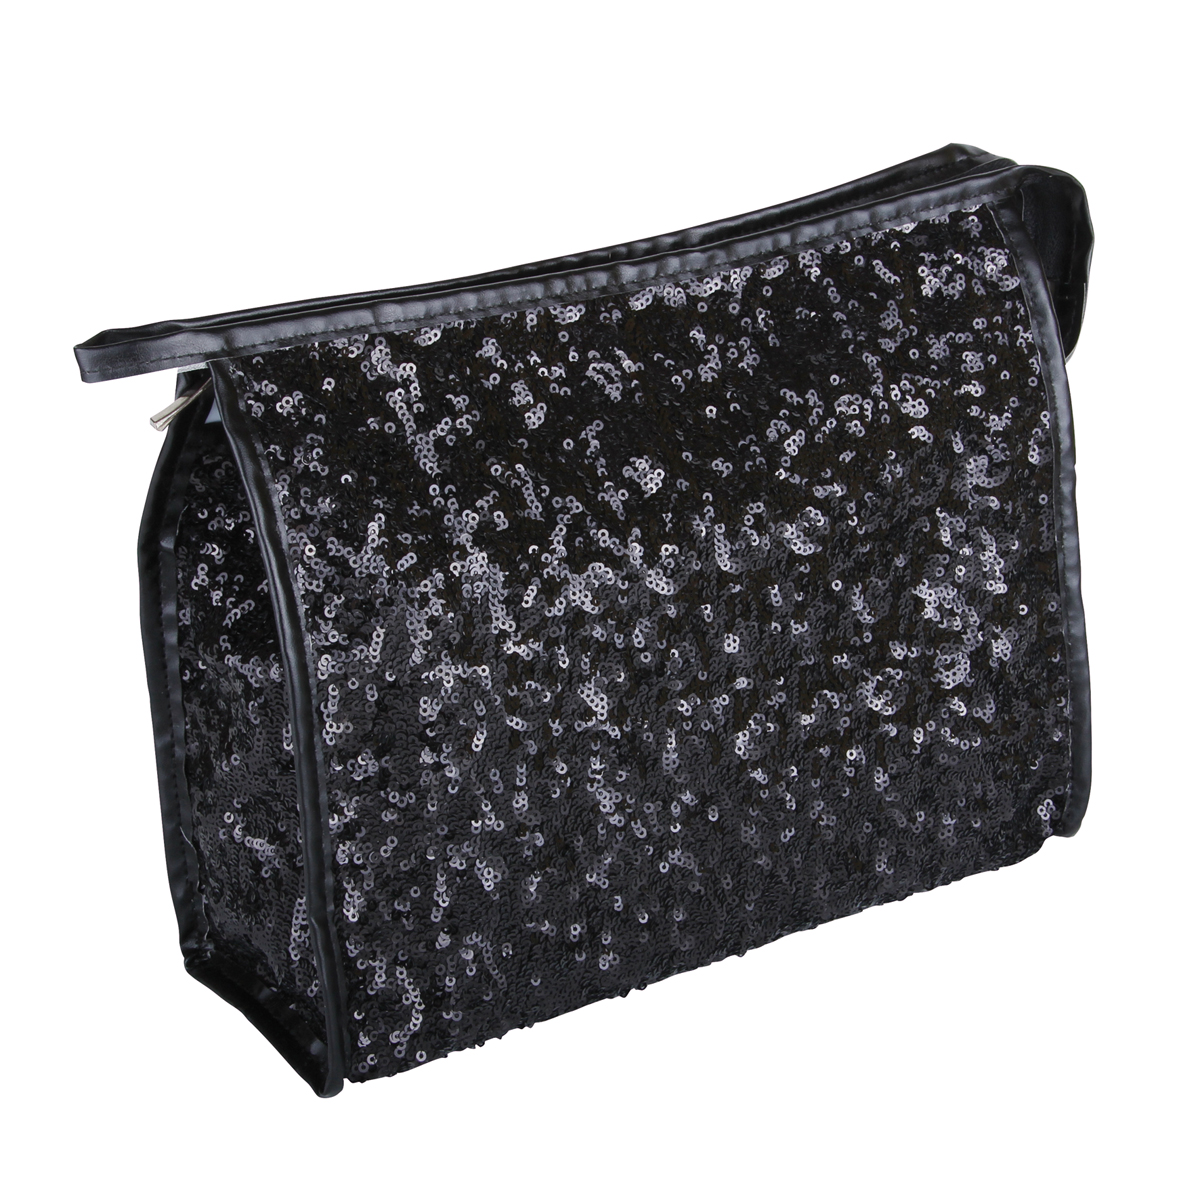 B2403 - Black Shimmer & Shine Collection Cosmetic/Toiletry Bags - B2403